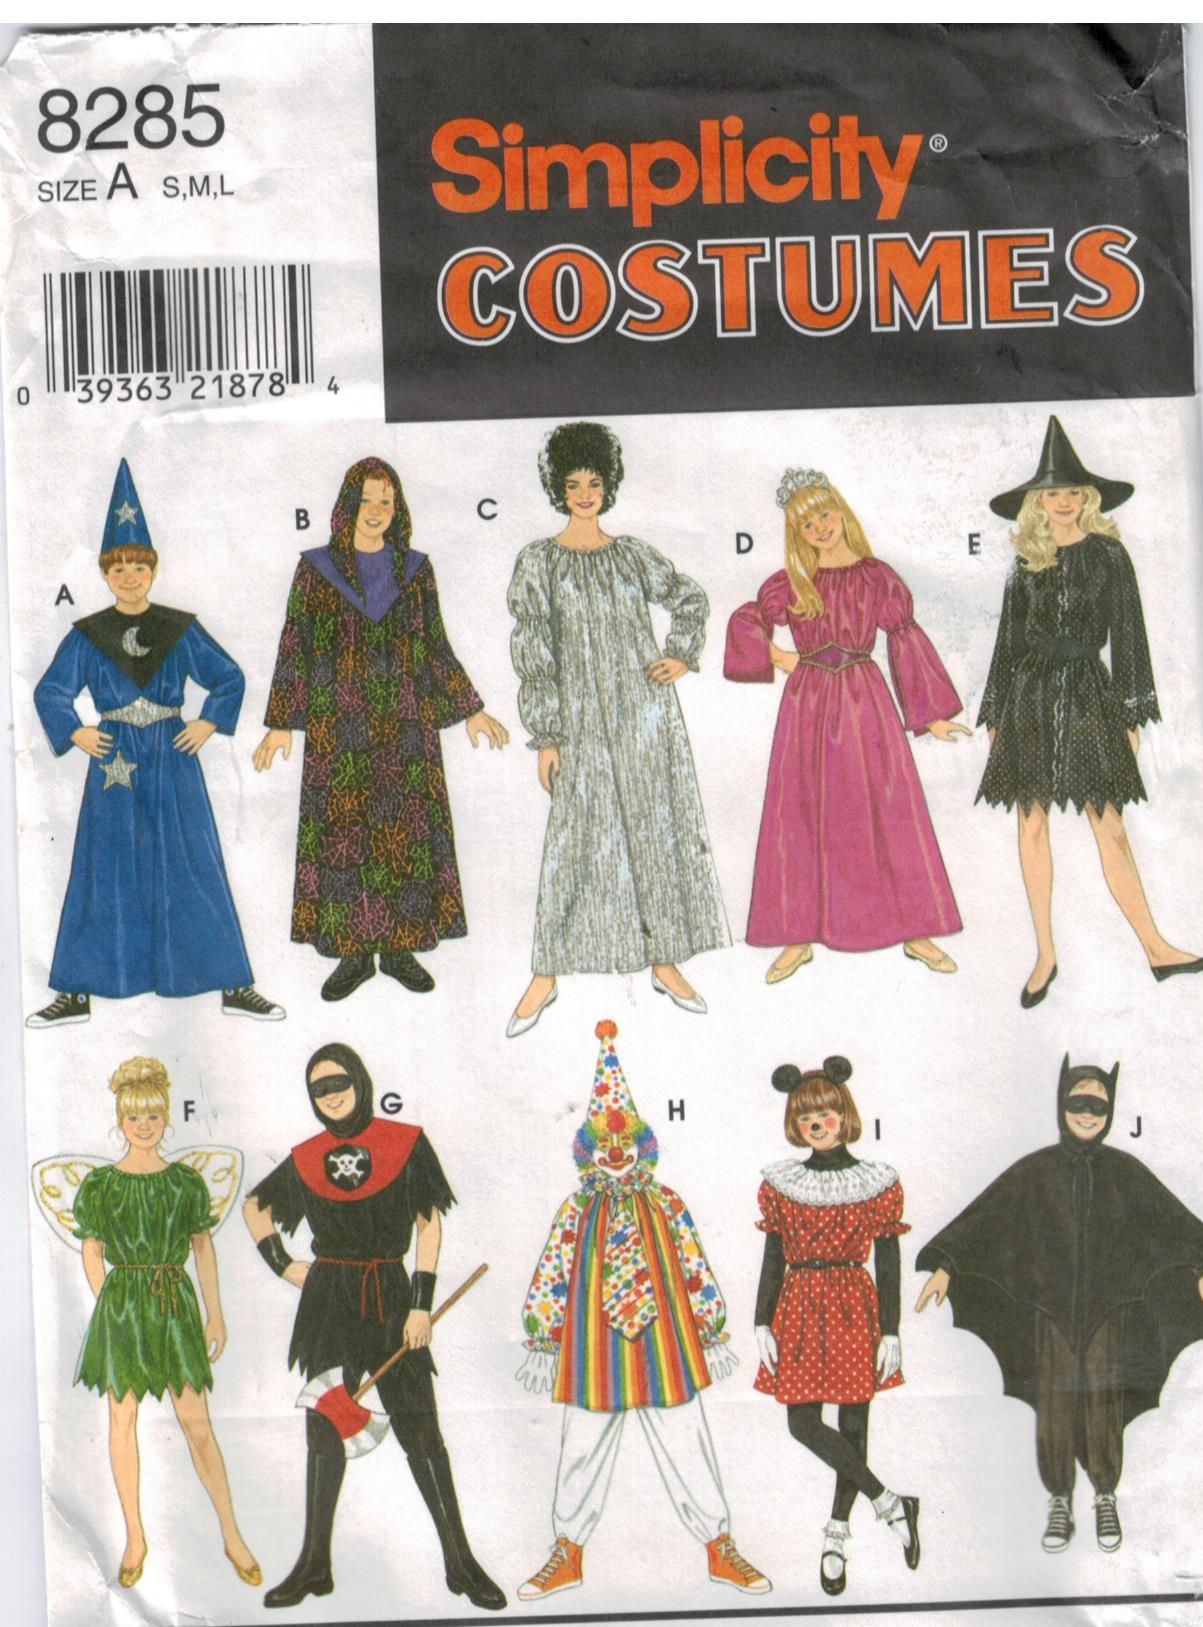 simplicity patterns halloween costumes - Hallowen Costum Udaf